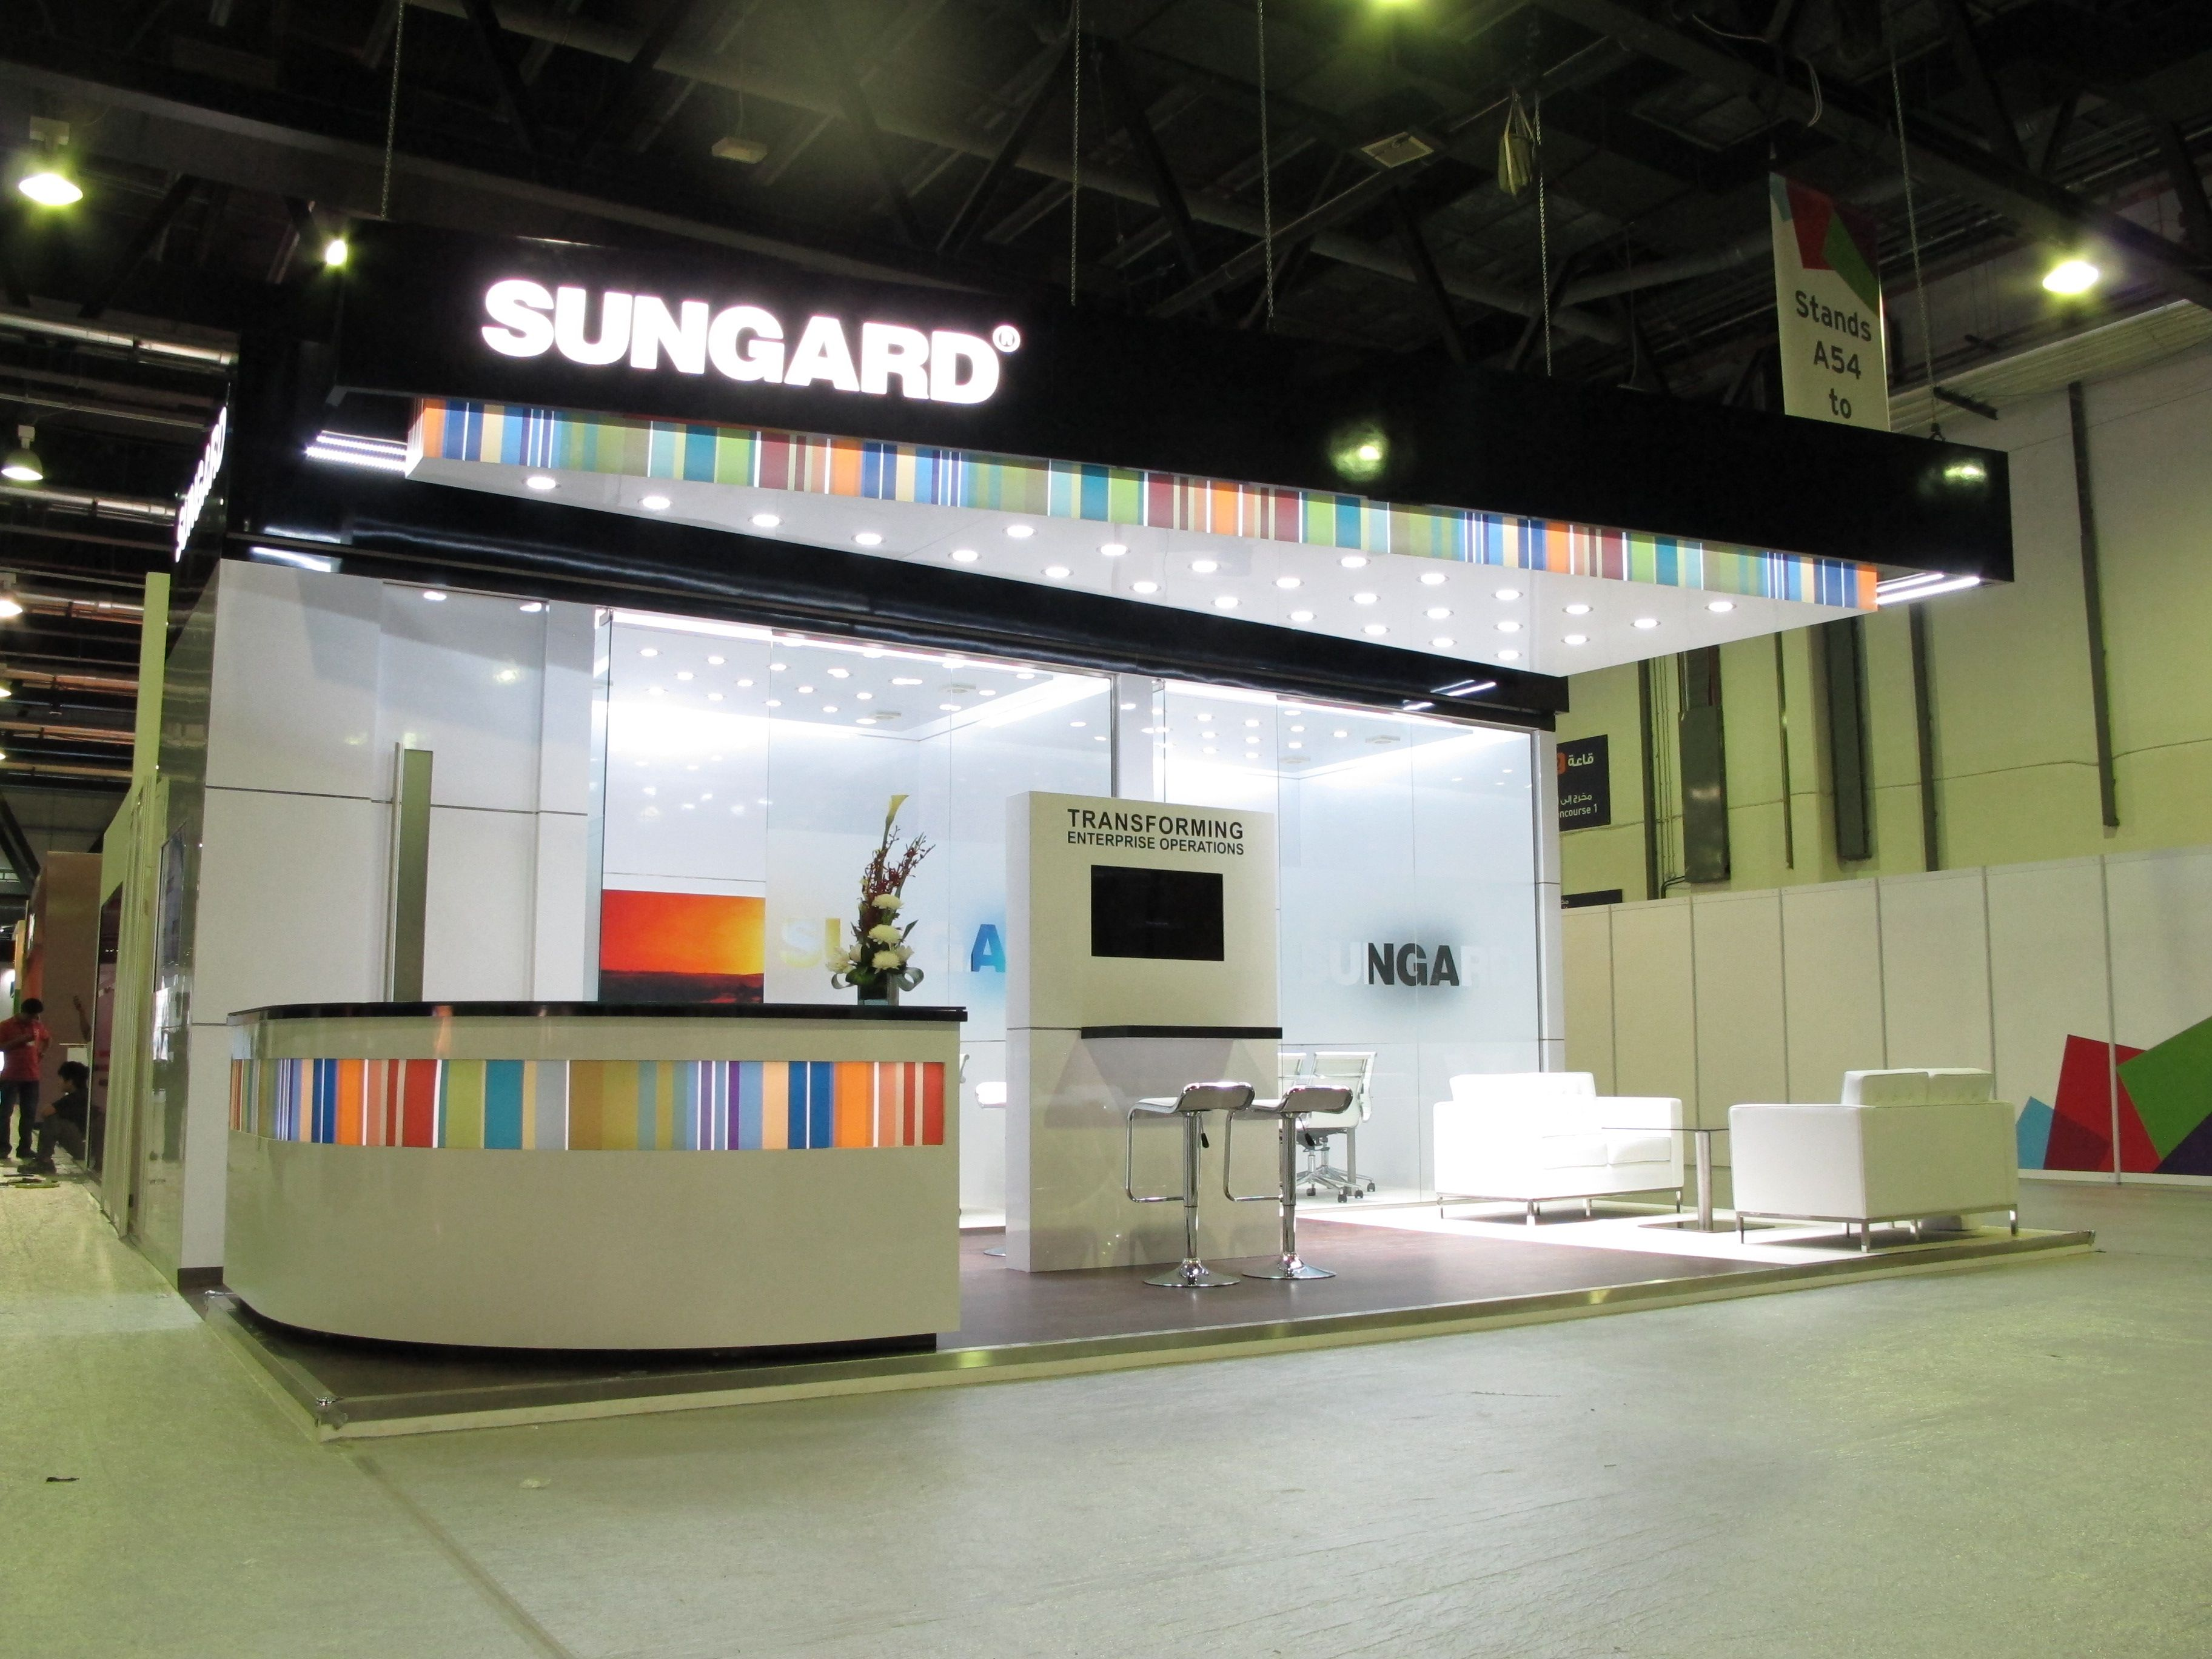 Sungard Exhibition Stand Qatar : Sungard booth at sibos dubai